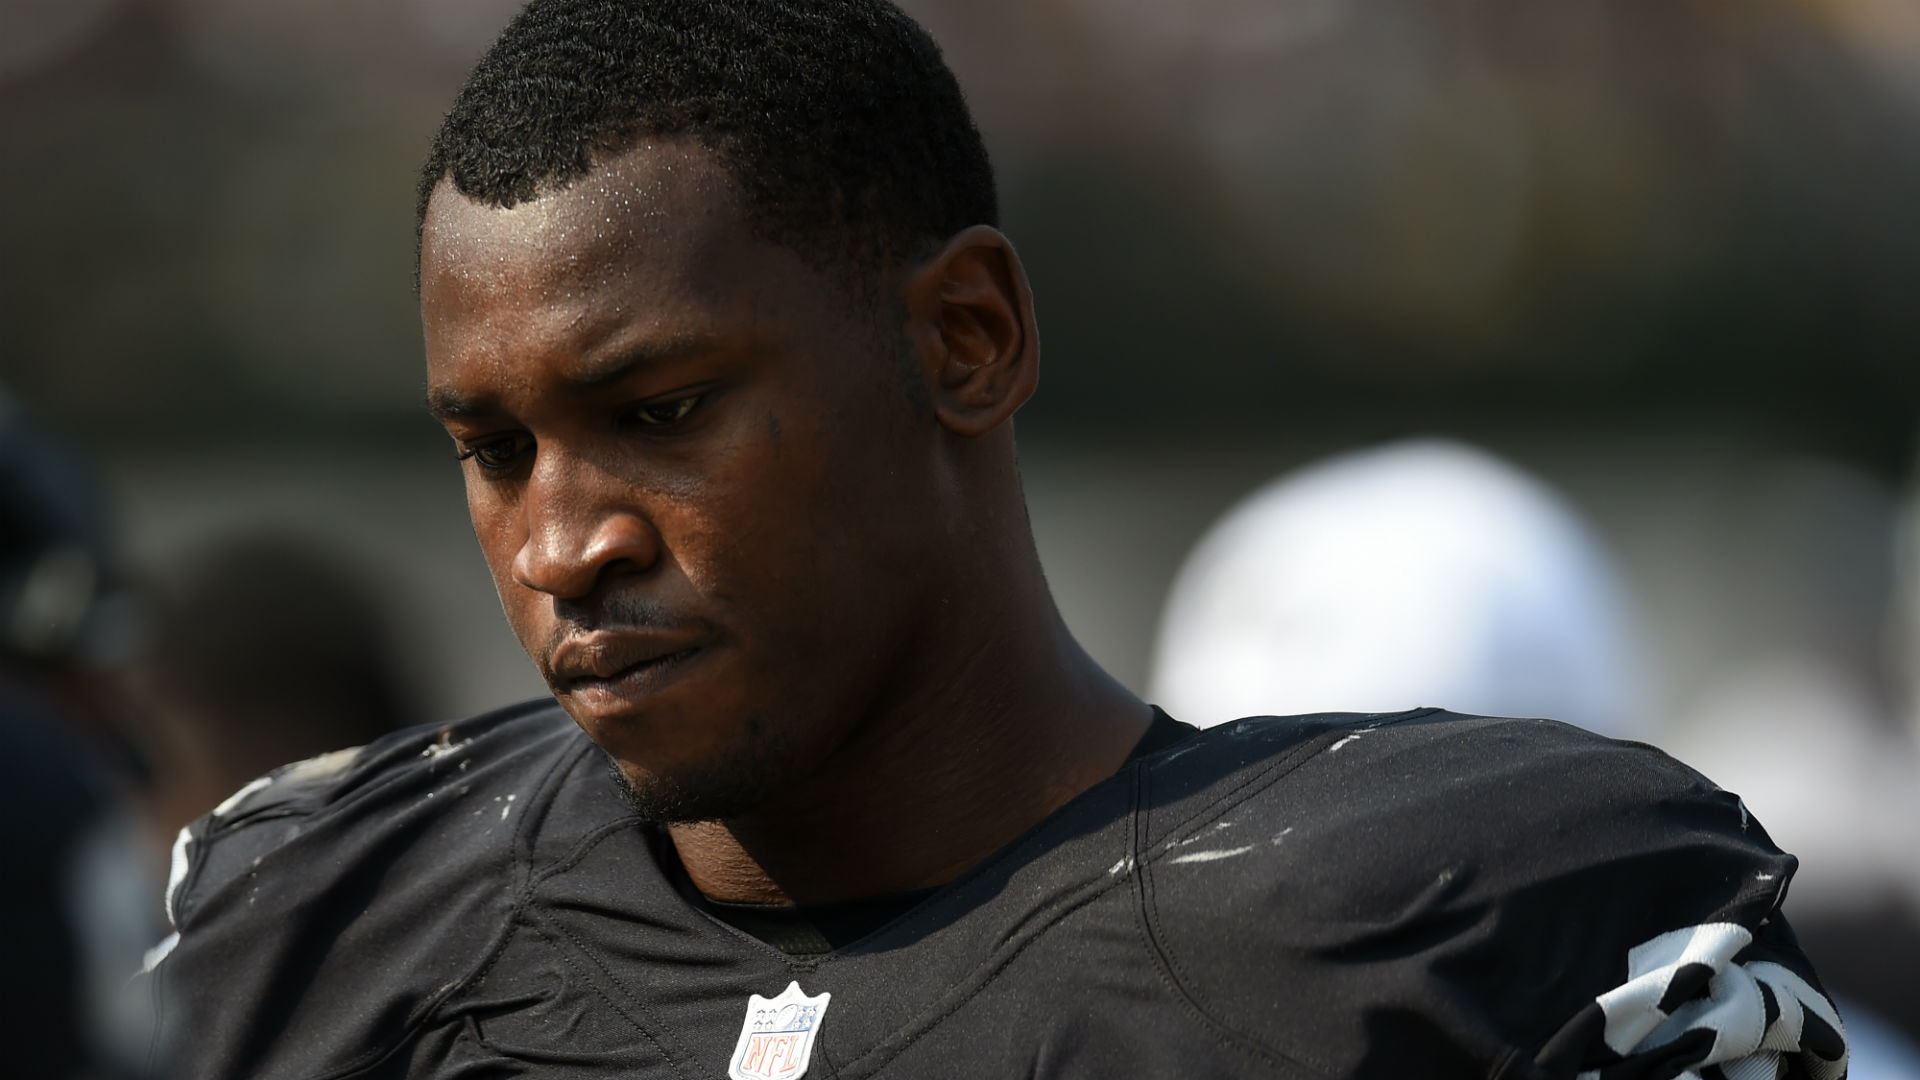 Seahawks' Aldon Smith wanted by police over second degree battery charge